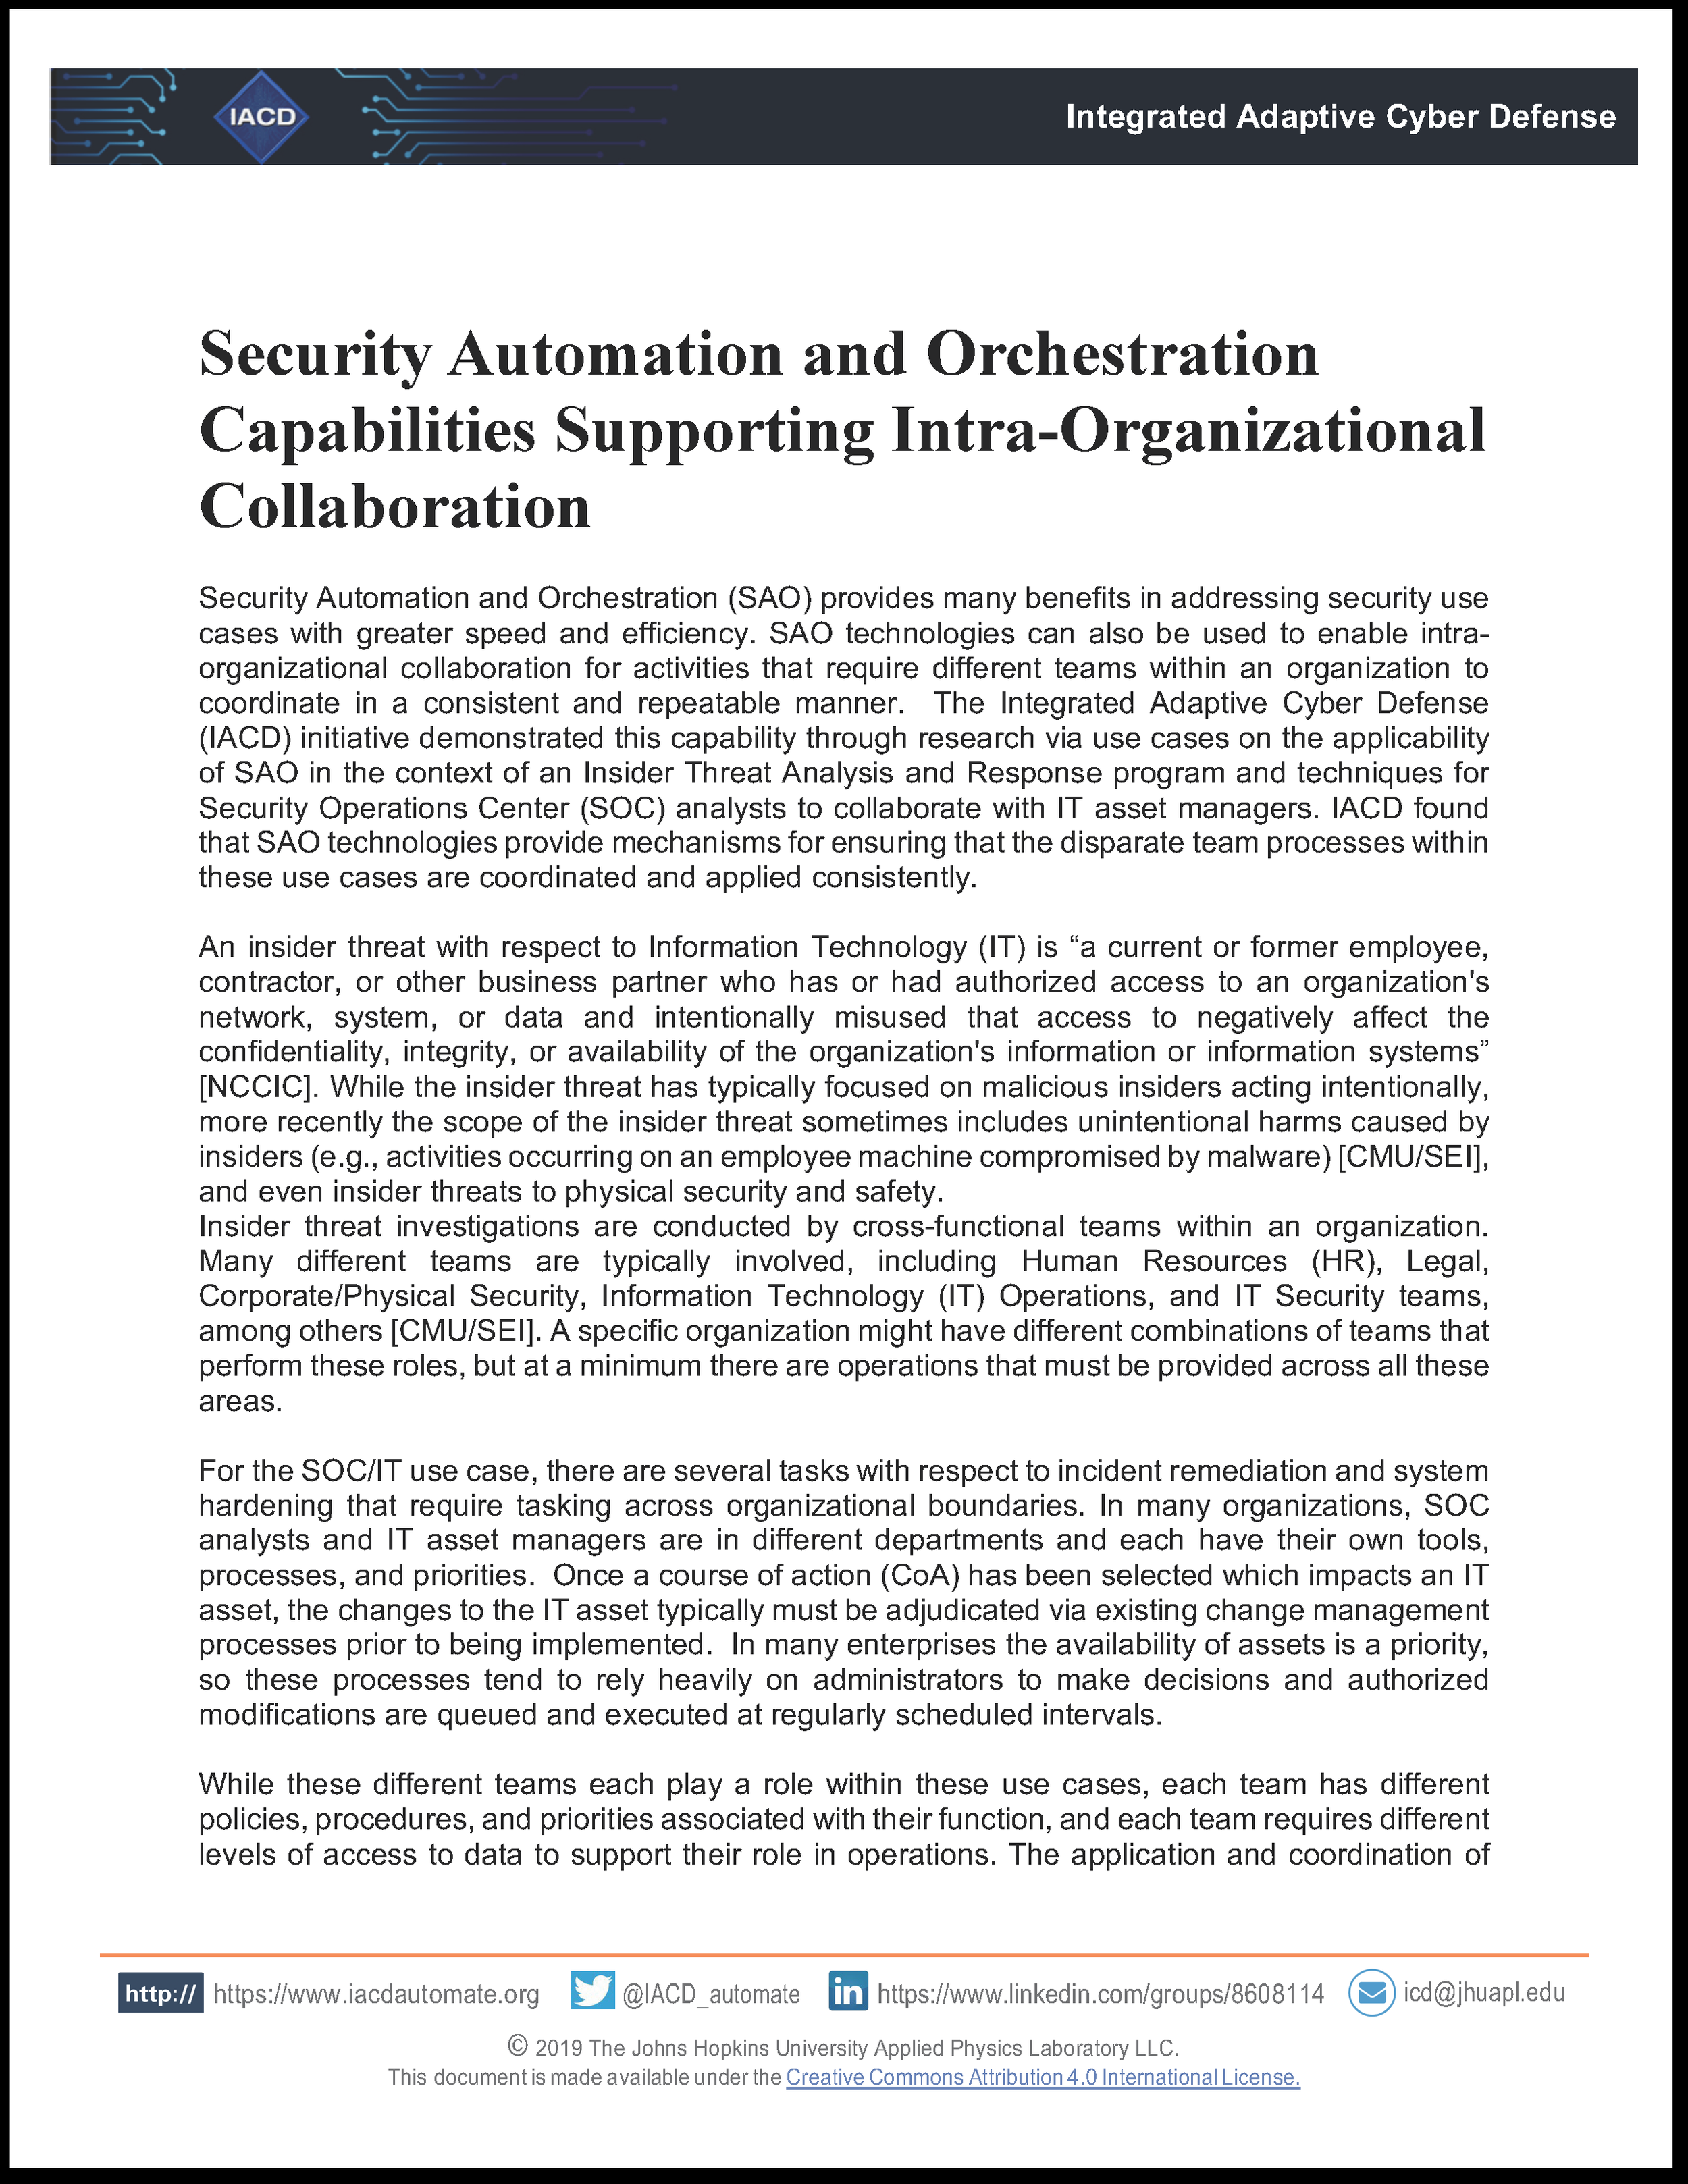 Security Automation and Orchestration Capabilities Supporting Intra-Organizational Collaboration